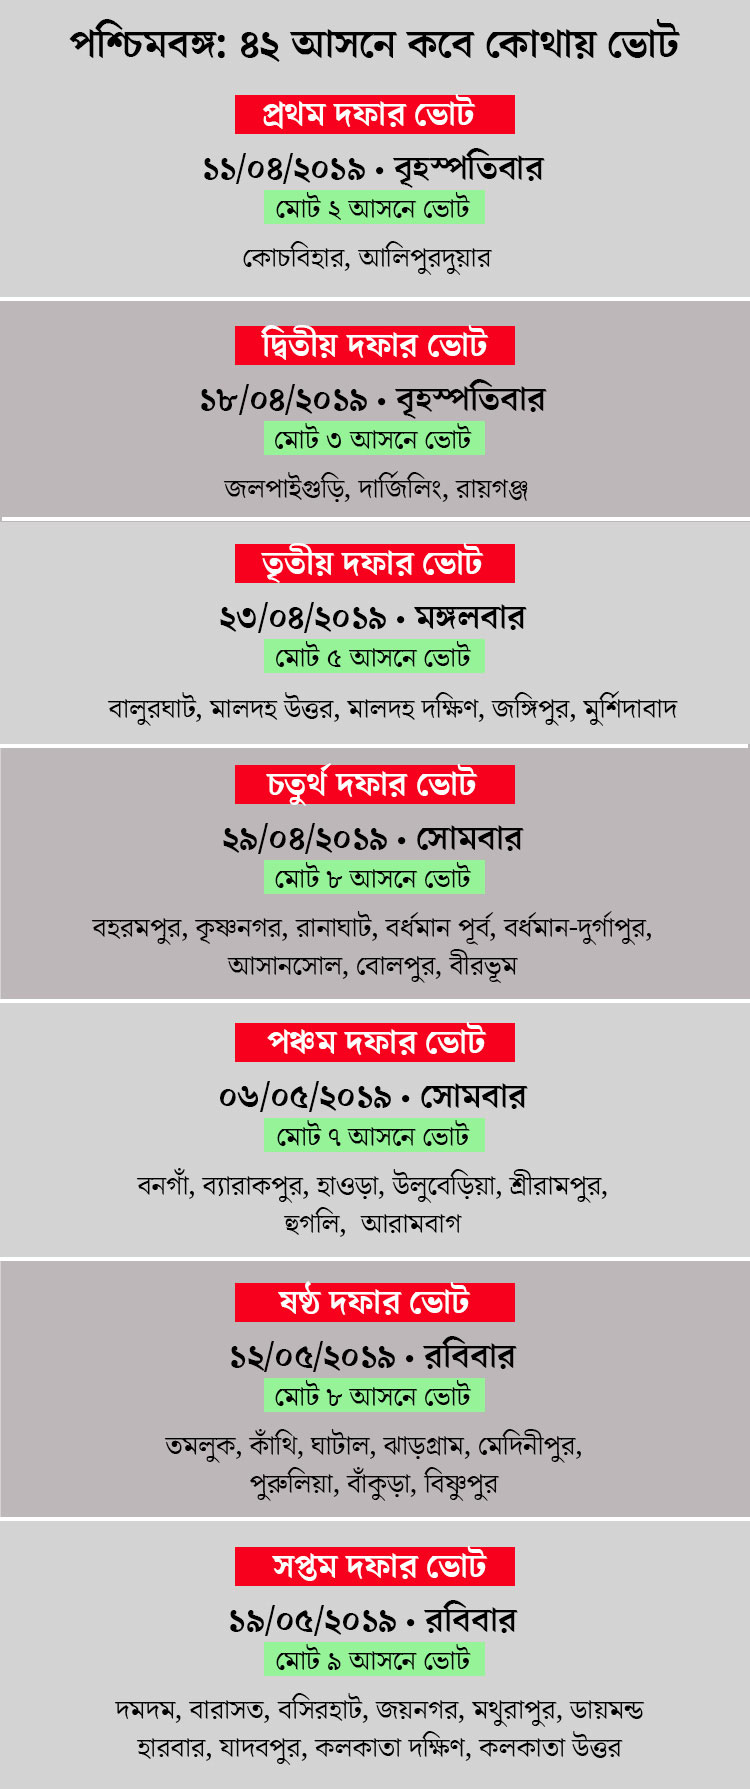 Schedule of Lok Sabha Election in West Bengal, 2019